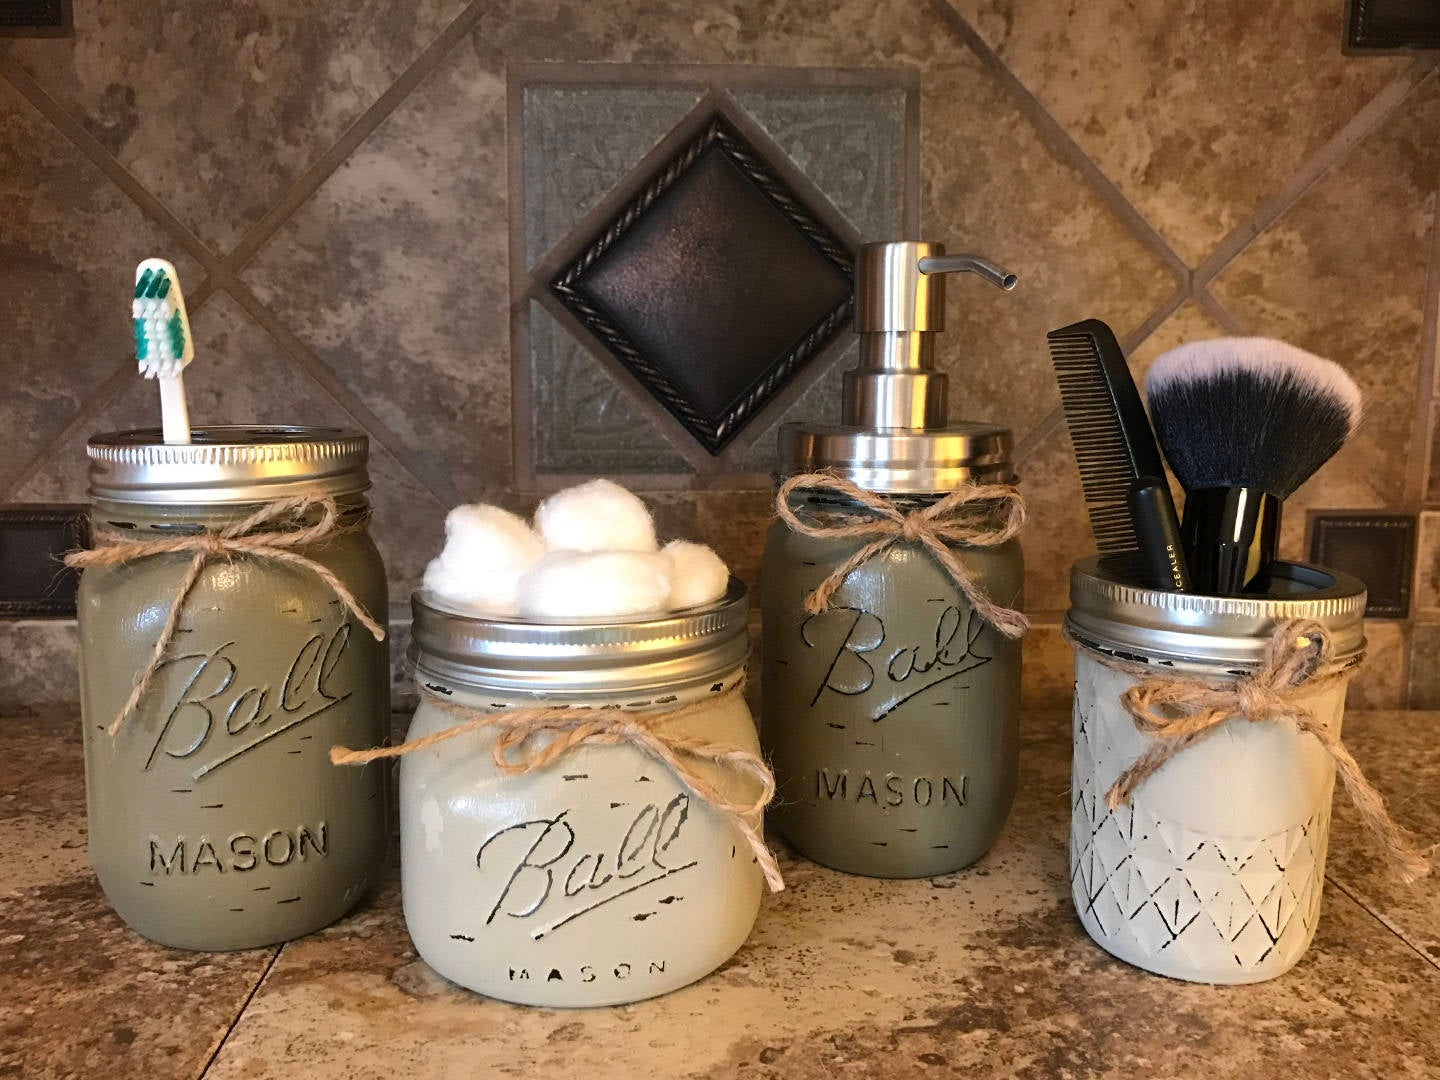 Mason jars used as beauty dispensers